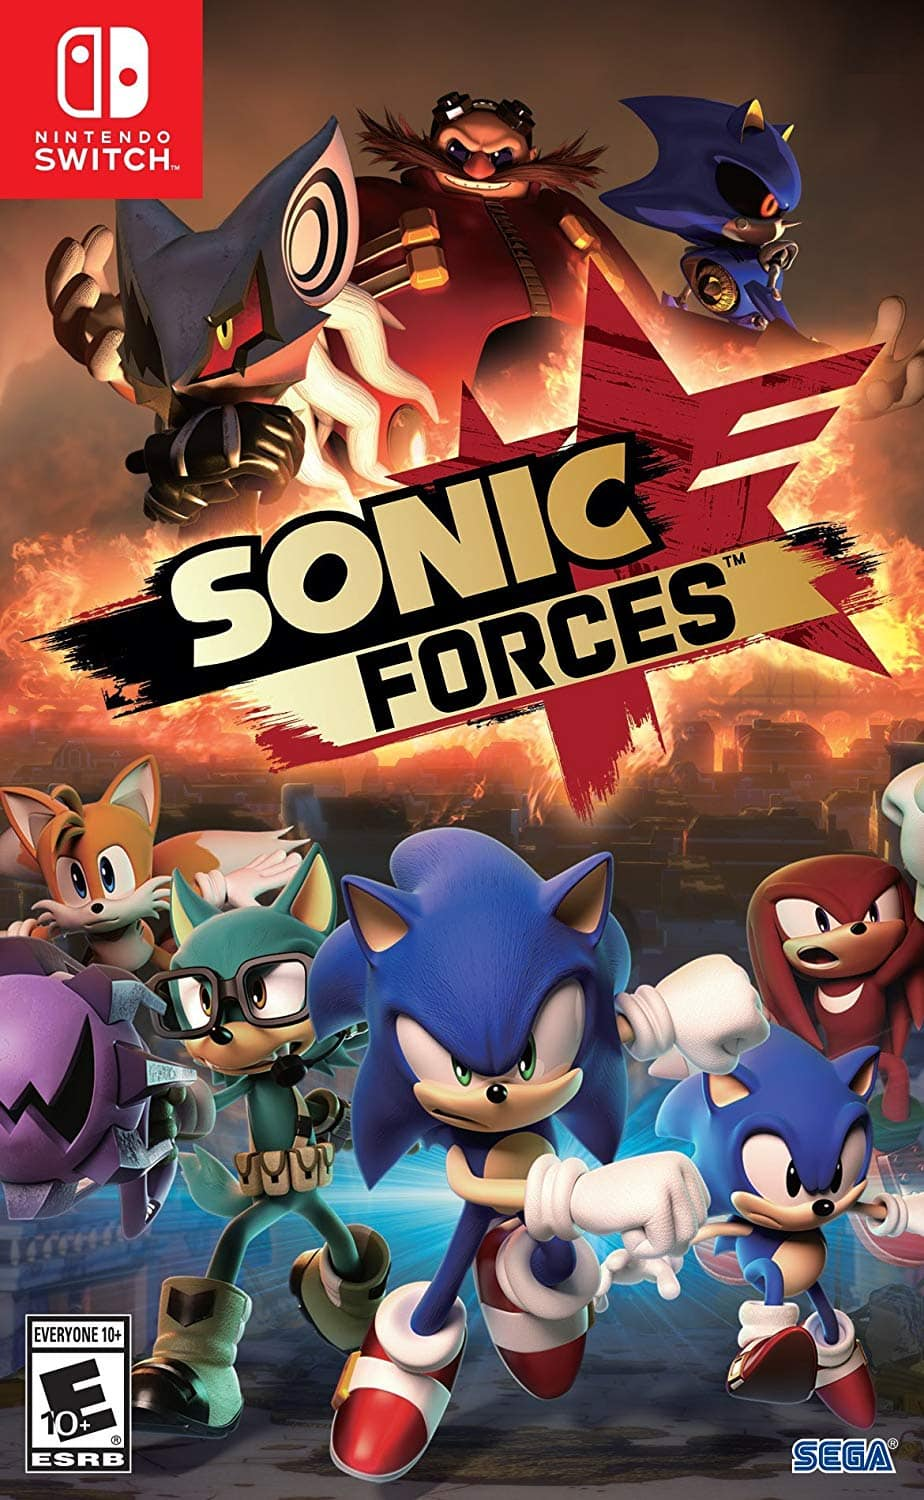 Sonic Forces Standard Edition $15.99 on Amazon